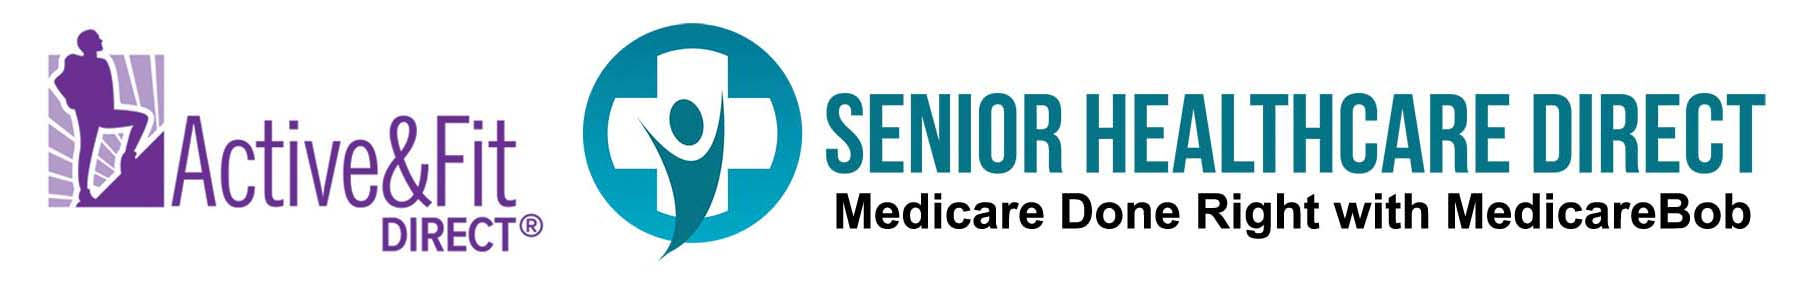 Senior Healthcare Direct - Active & Fit